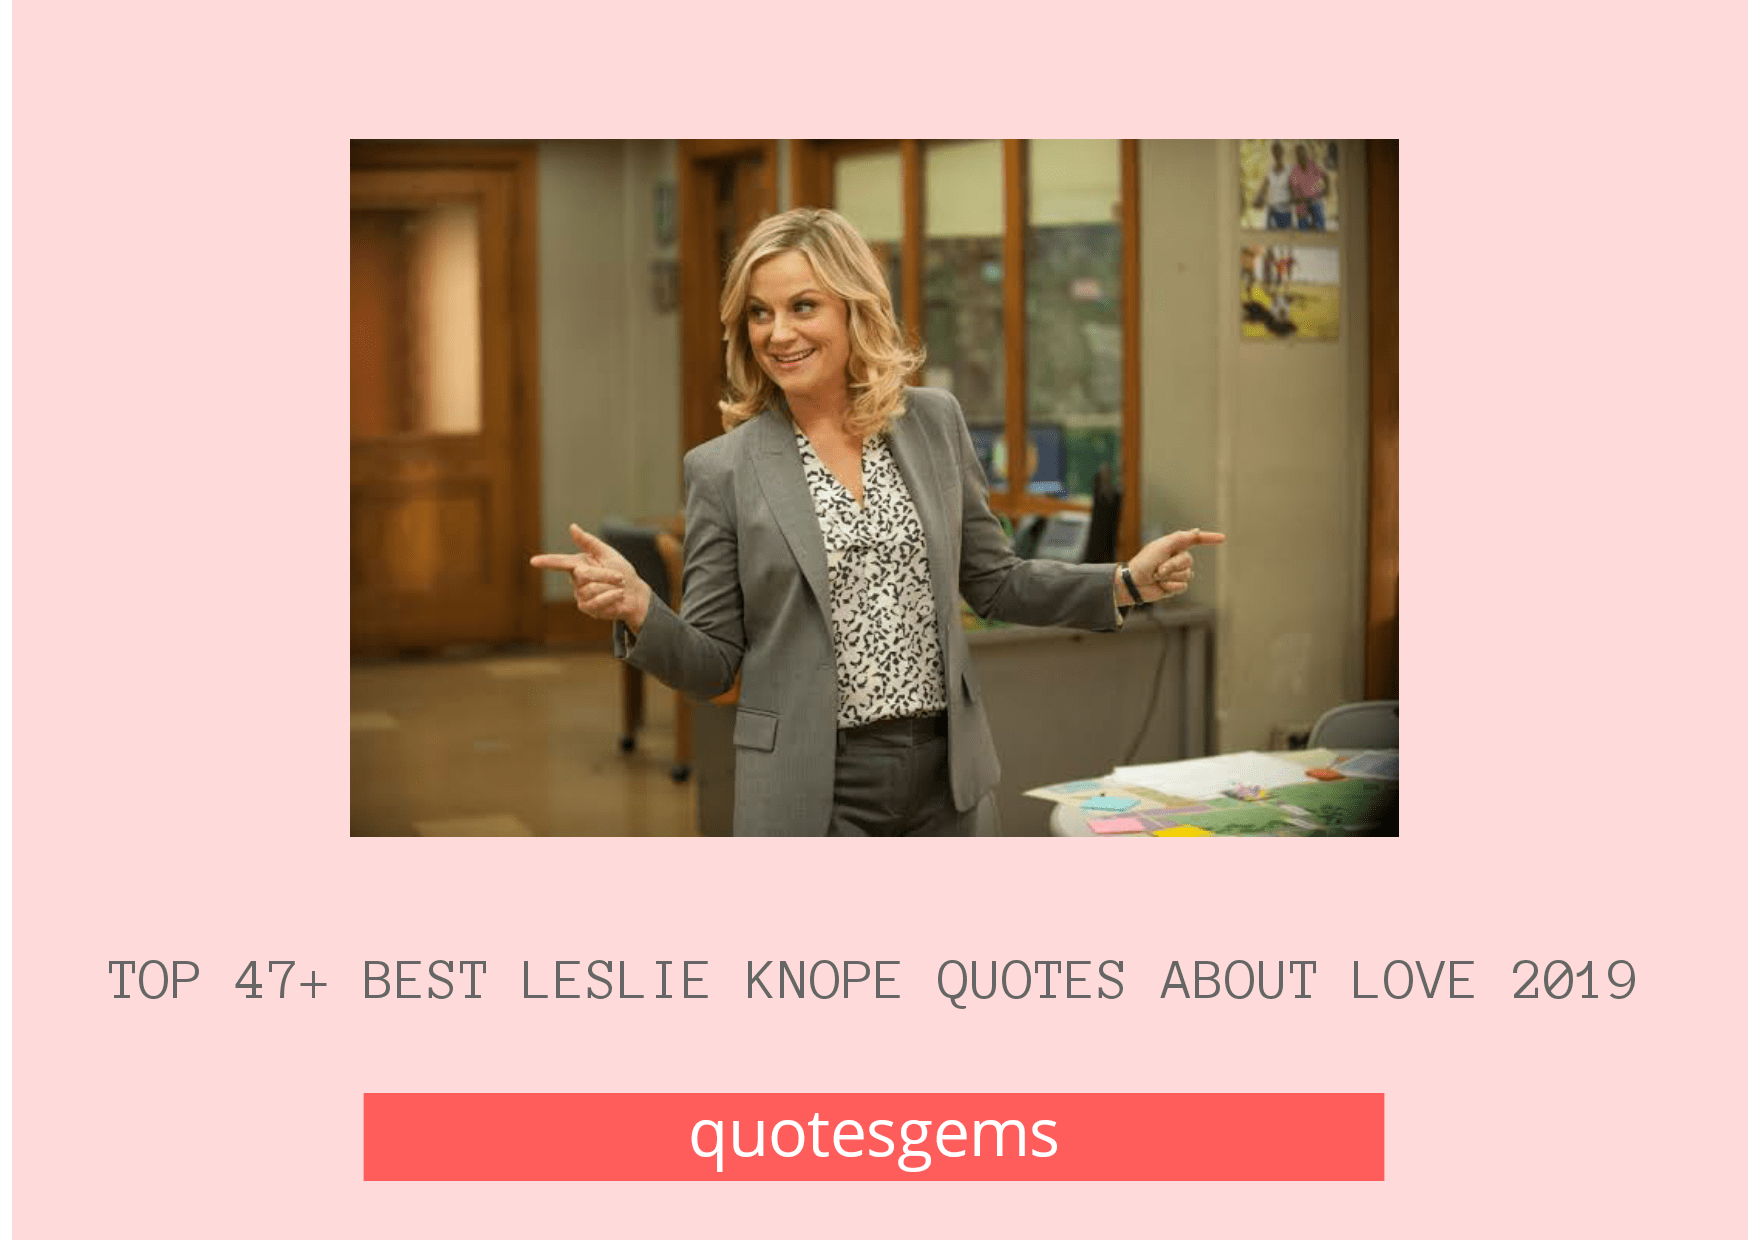 Leslie Knope Quotes About Love 2019